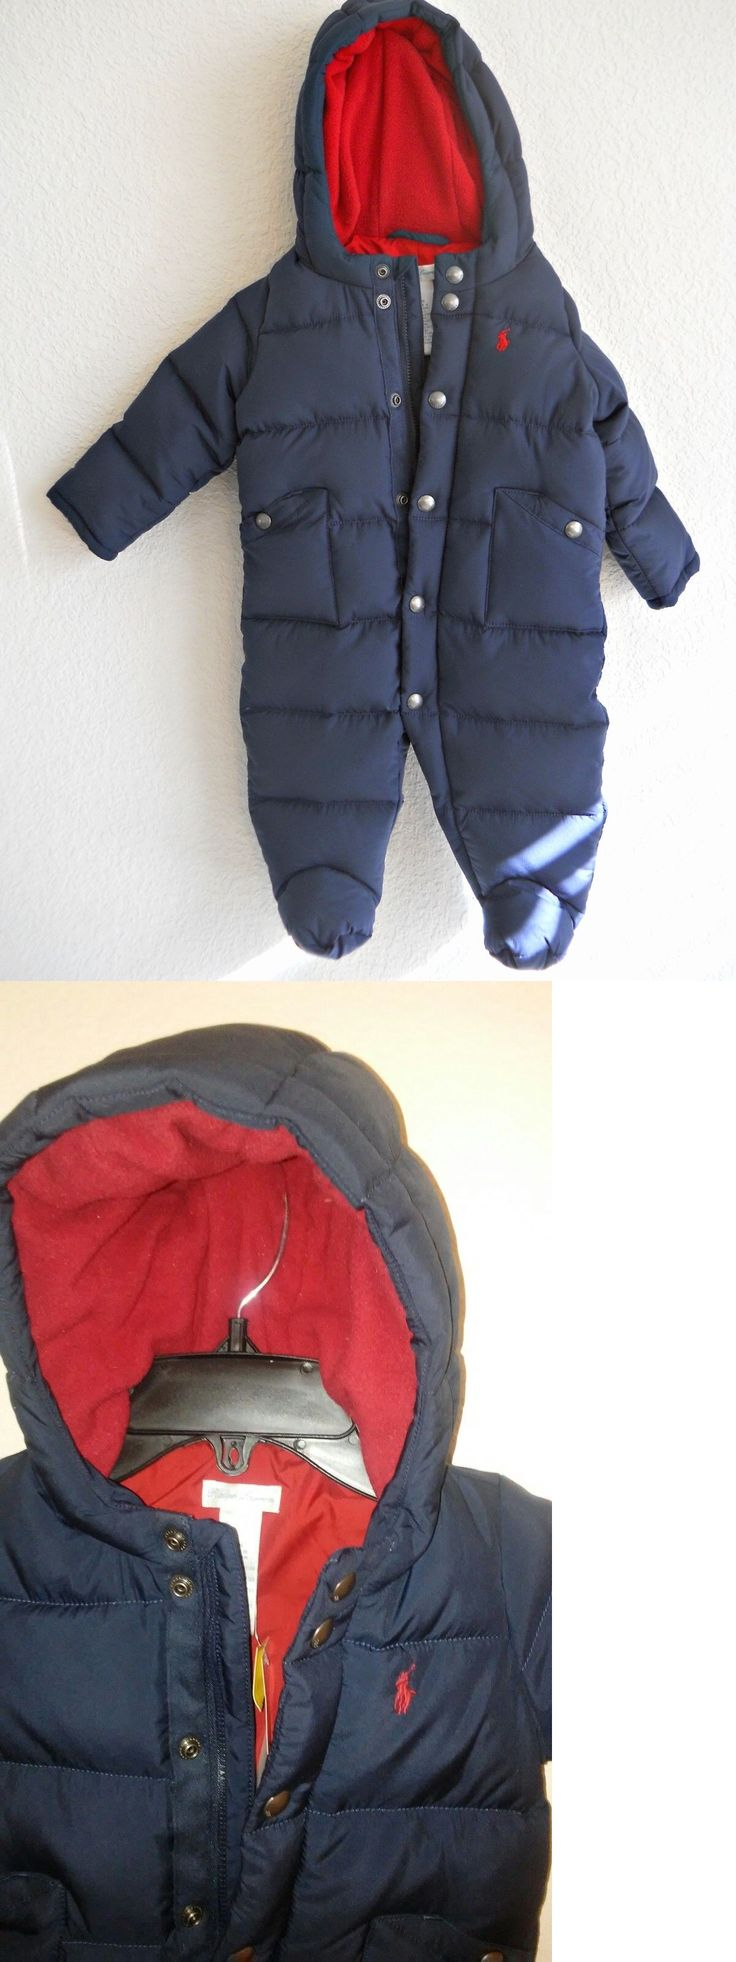 Baby Boys Clothing And Accessories: Baby Boy Size 6 Months Ralph Lauren Navy Down Hooded Puffer Snowsuit Bunting BUY IT NOW ONLY: $55.0